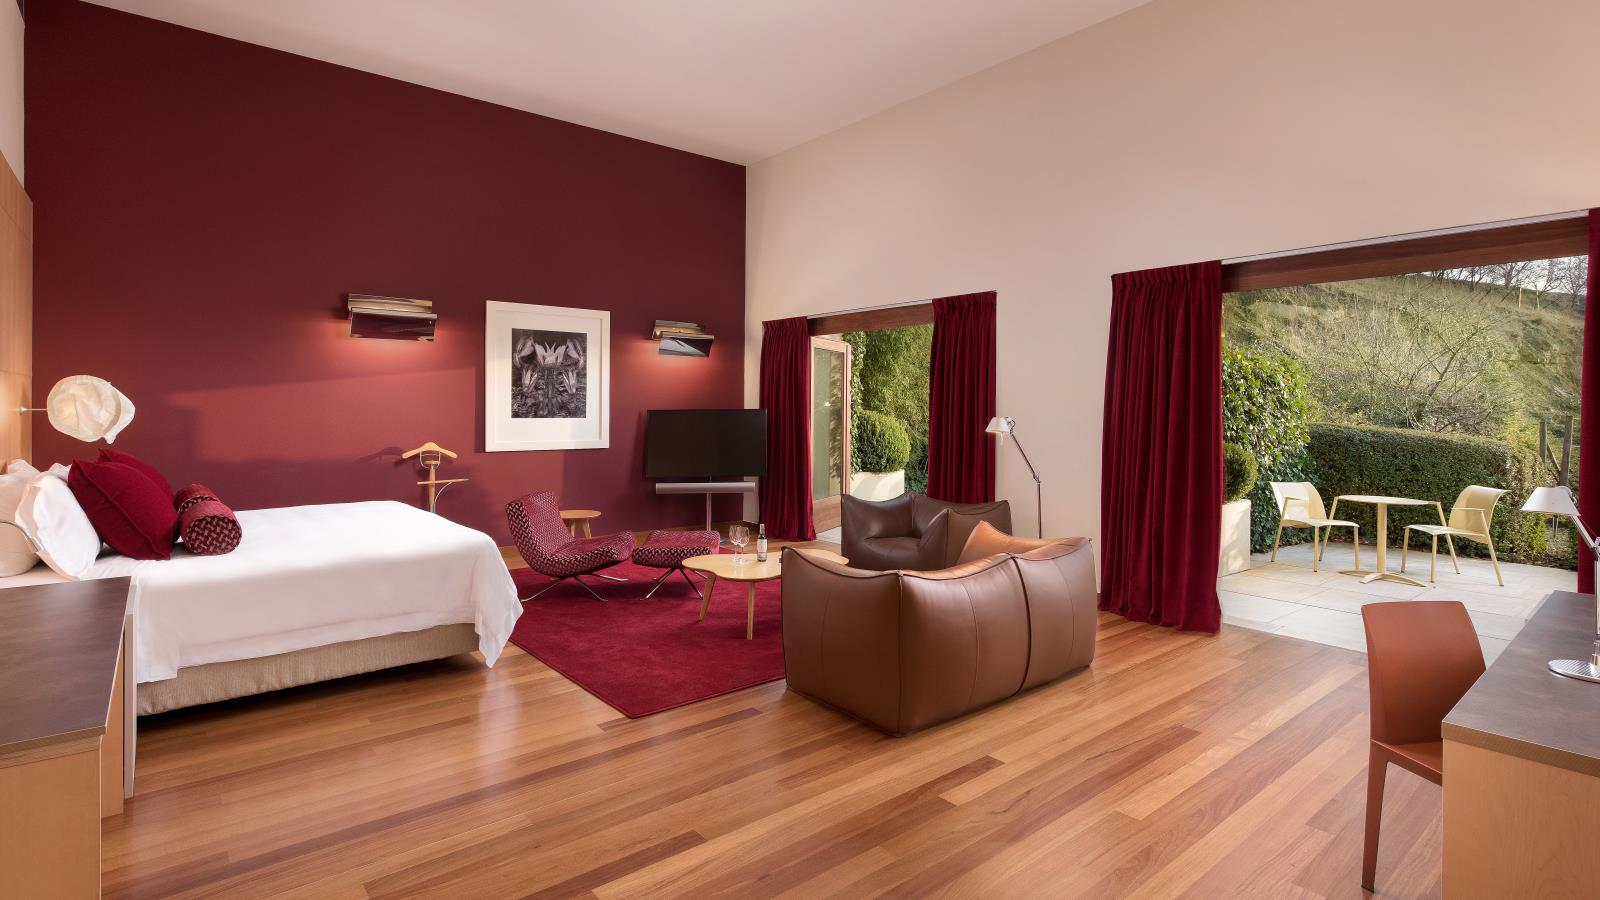 Executive Suite with Terrace, Hotel Marqués de Riscal, Elciego